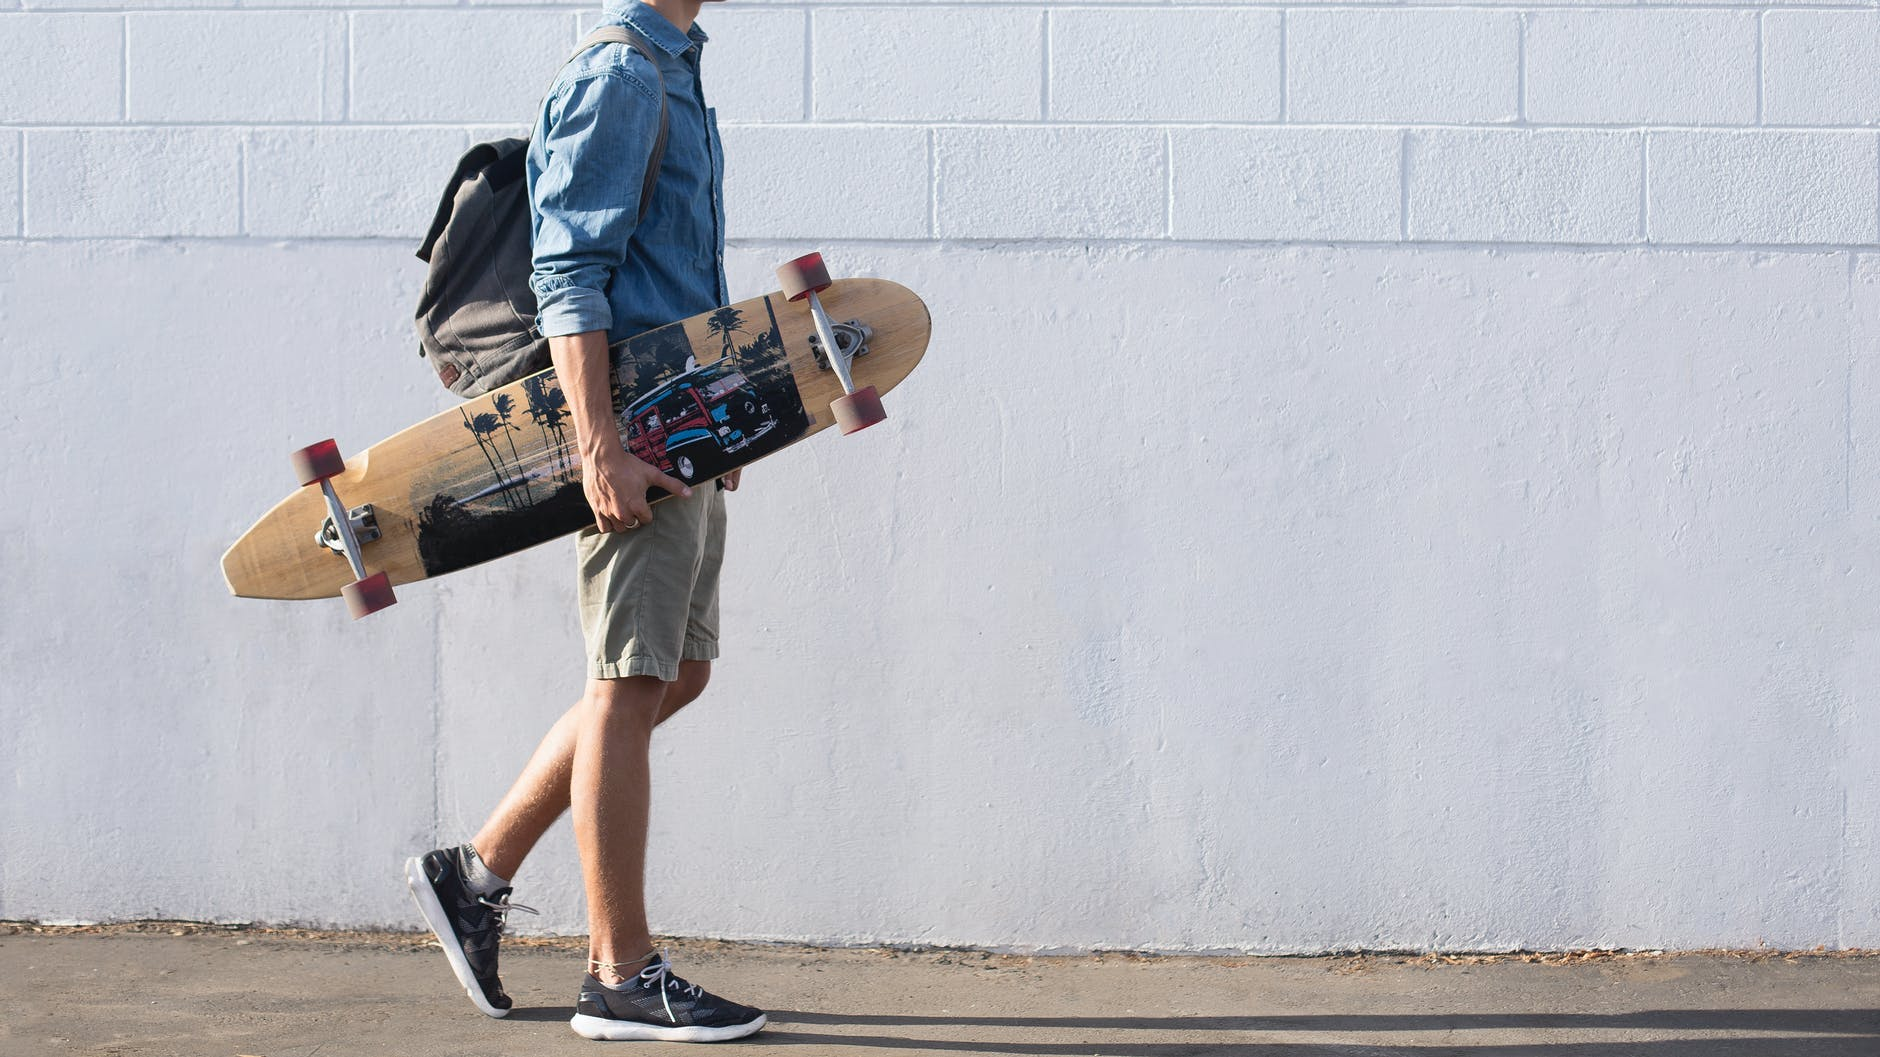 Best Electric Skateboards To Buy This Year